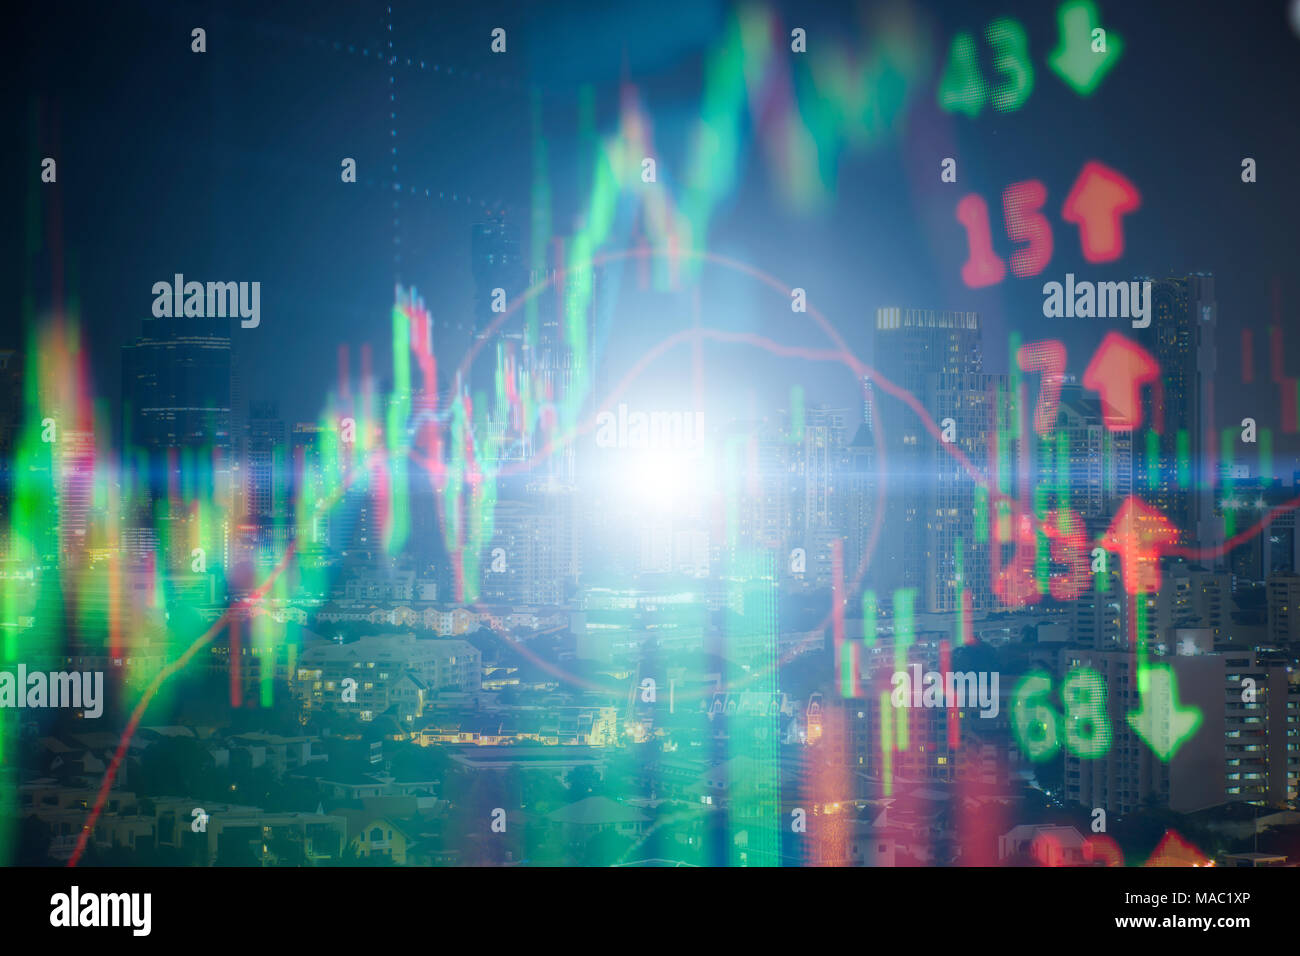 Investment growth concept with price of stock market graph background: Candlestick graph chart of stock market investment trading. Stock Photo